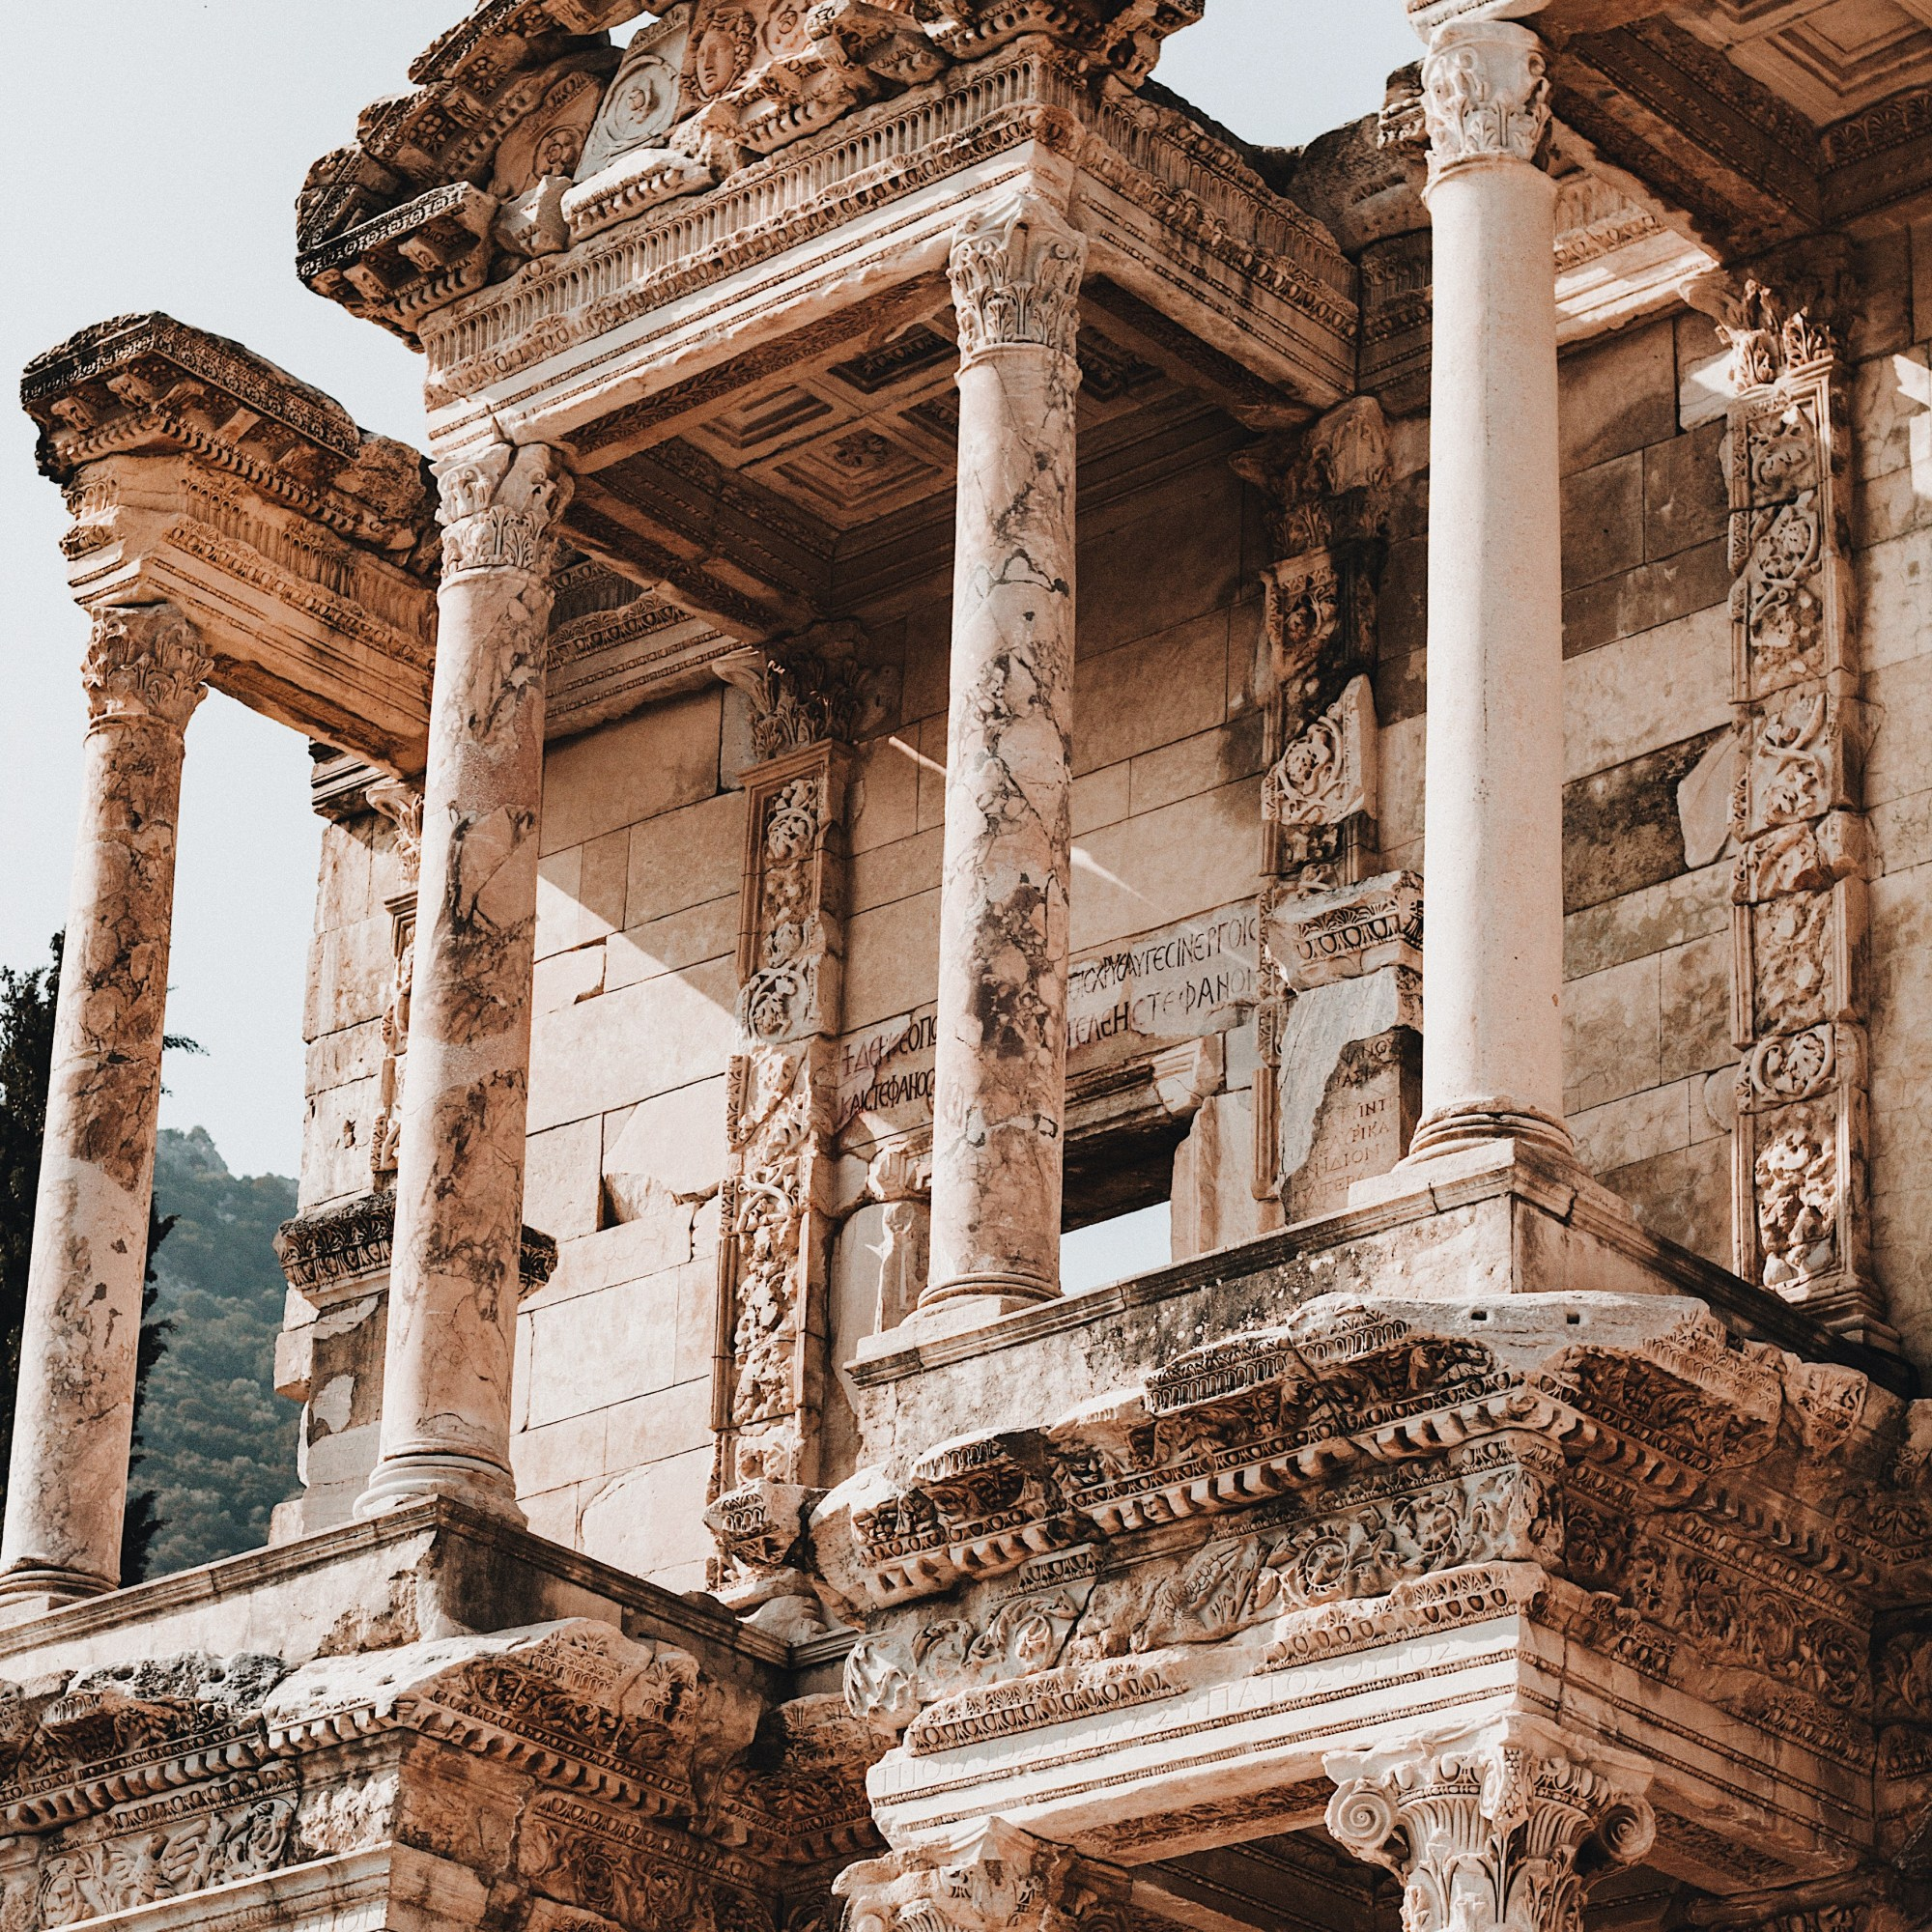 Illustrated by Sade - Facade and pillars of the Library of Celsus